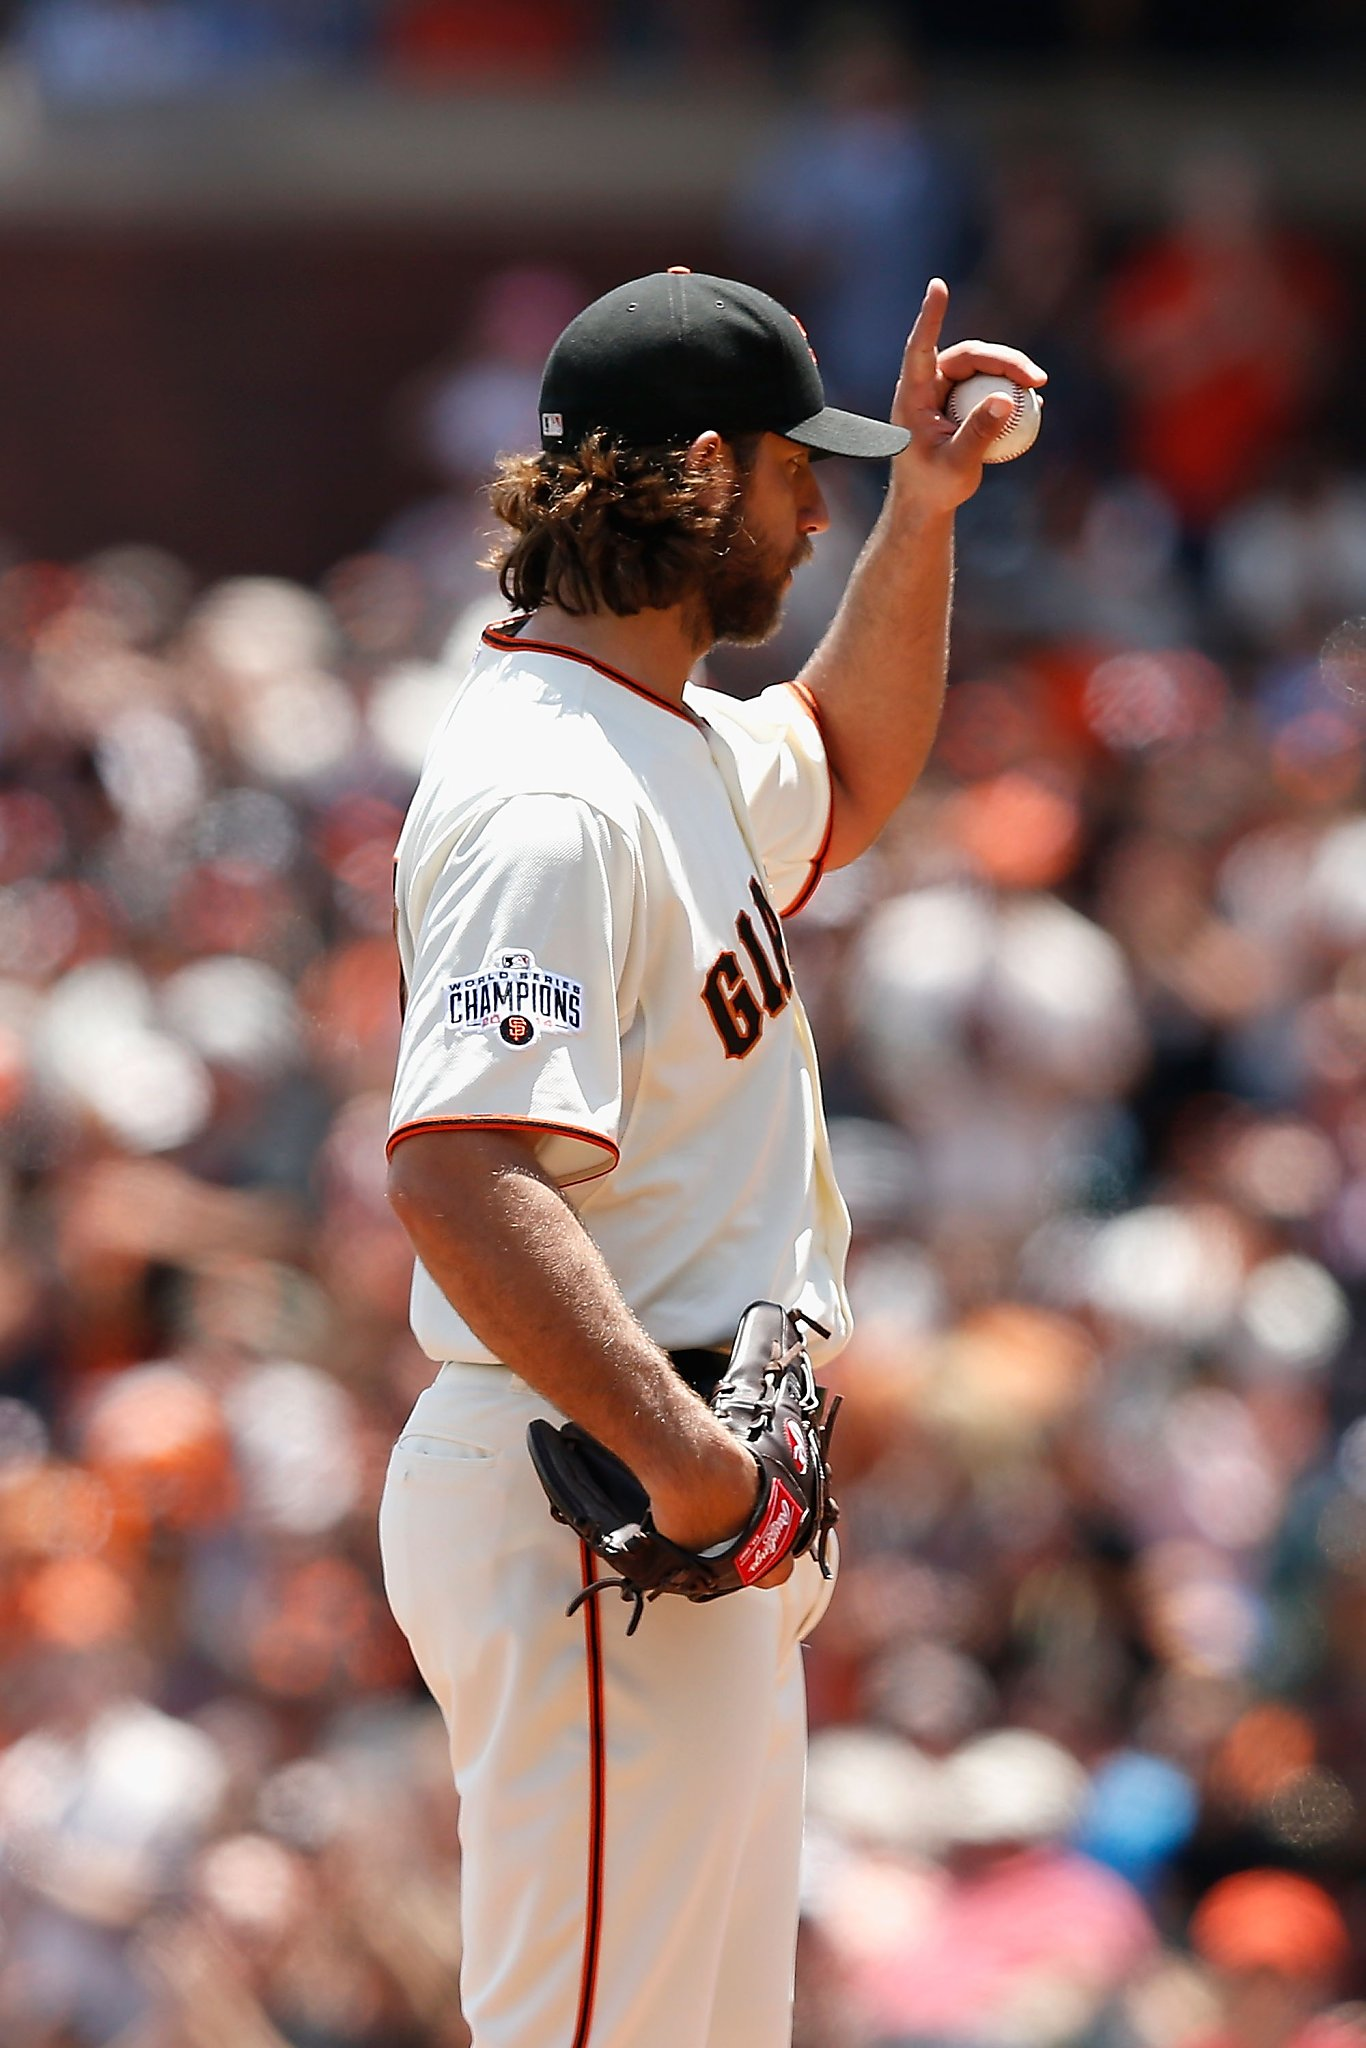 Offense does its job; Bumgarner reaches strikeout milestone